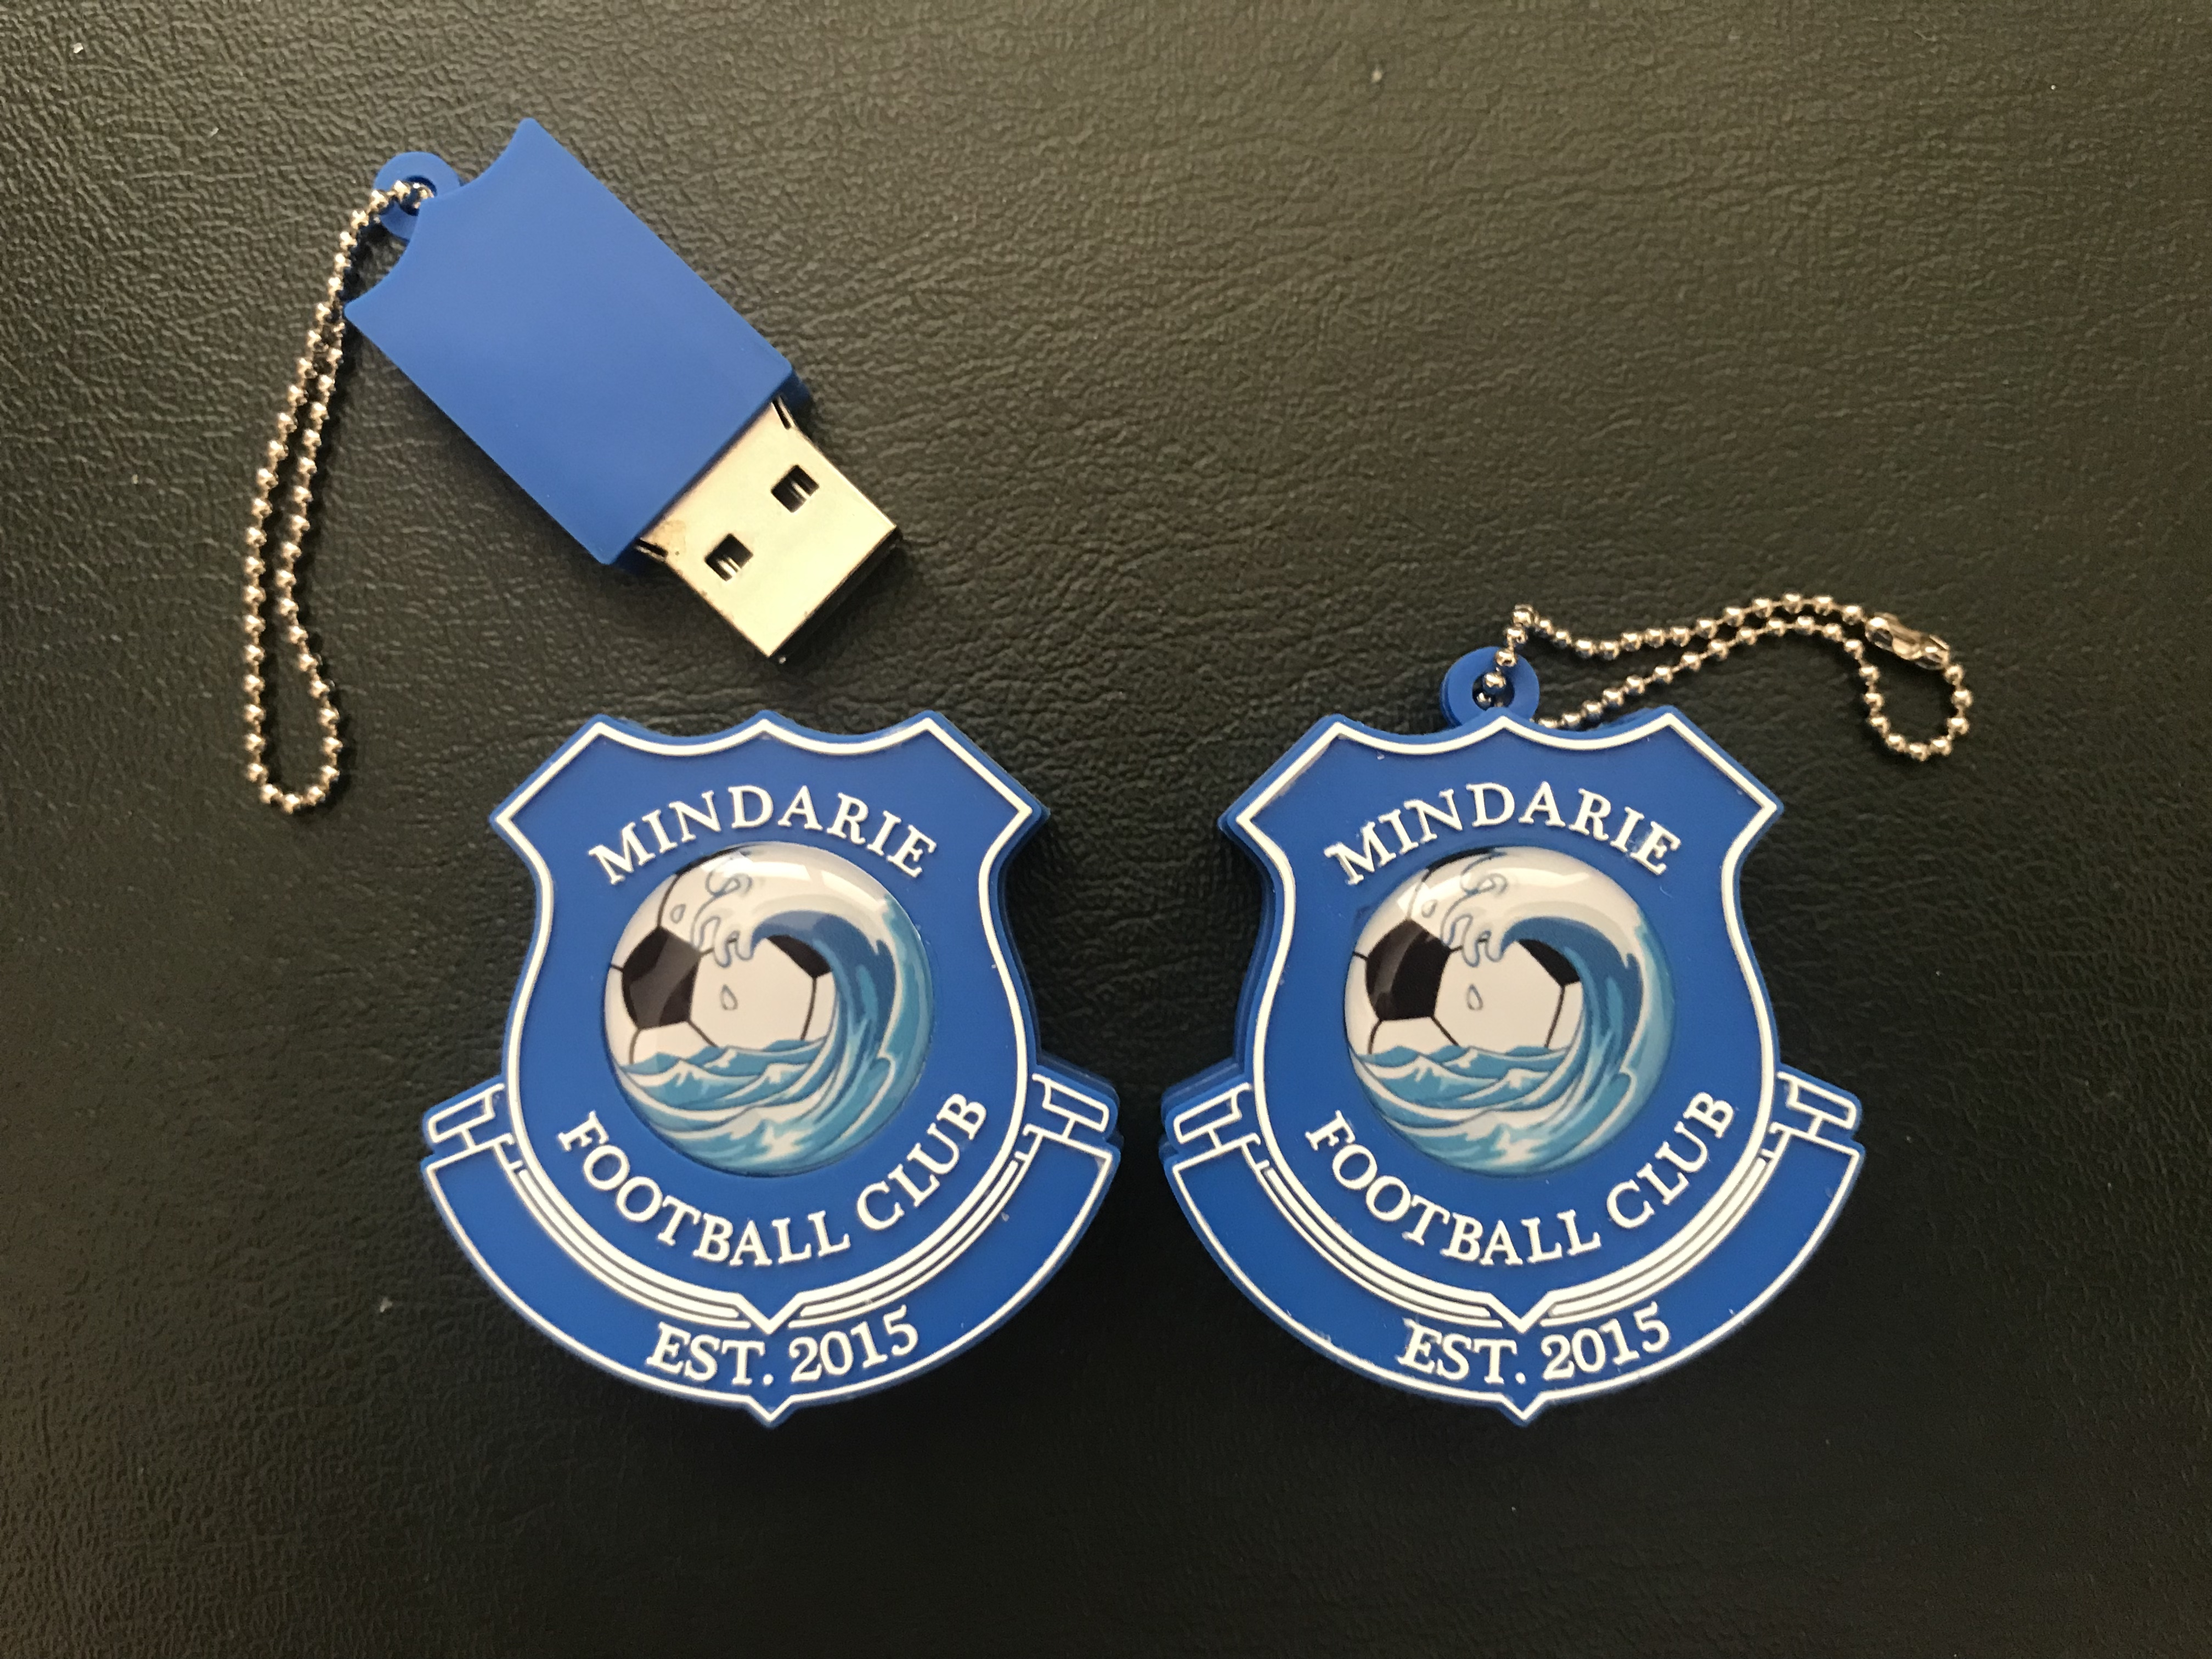 16GB CLUB USB $10